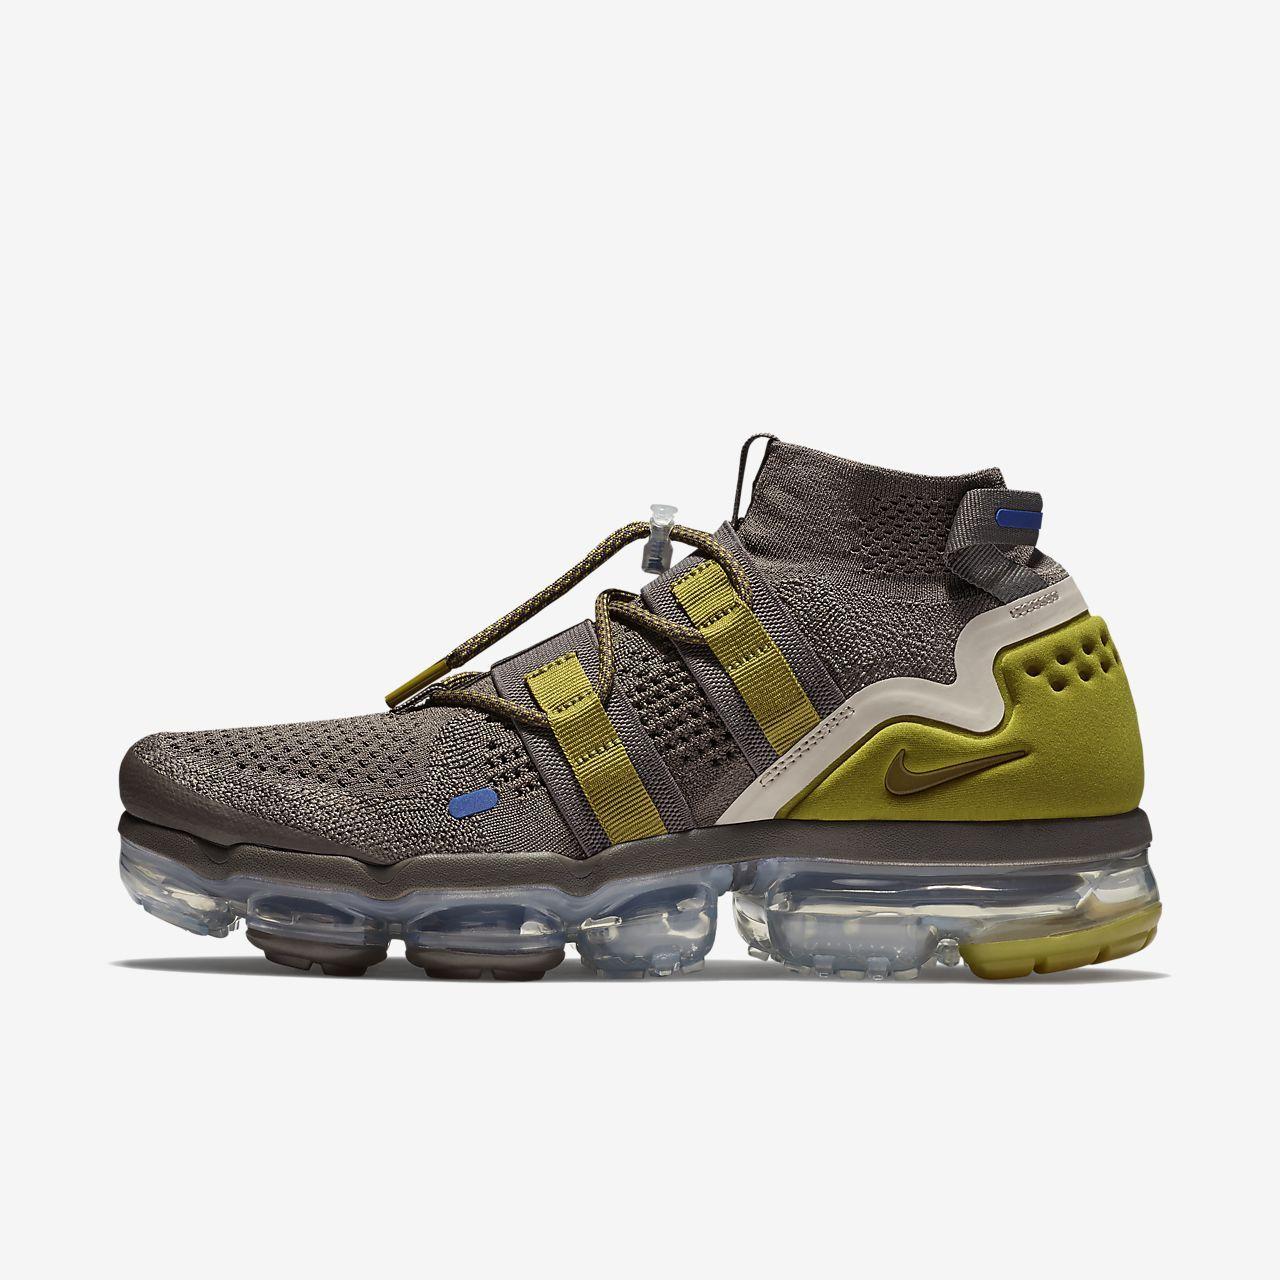 f2f10caa2a Nike Air VaporMax Flyknit Utility Running Shoe Ridgerock/Light Cream/Racer  Blue/Peat Moss Style: AH6834-200